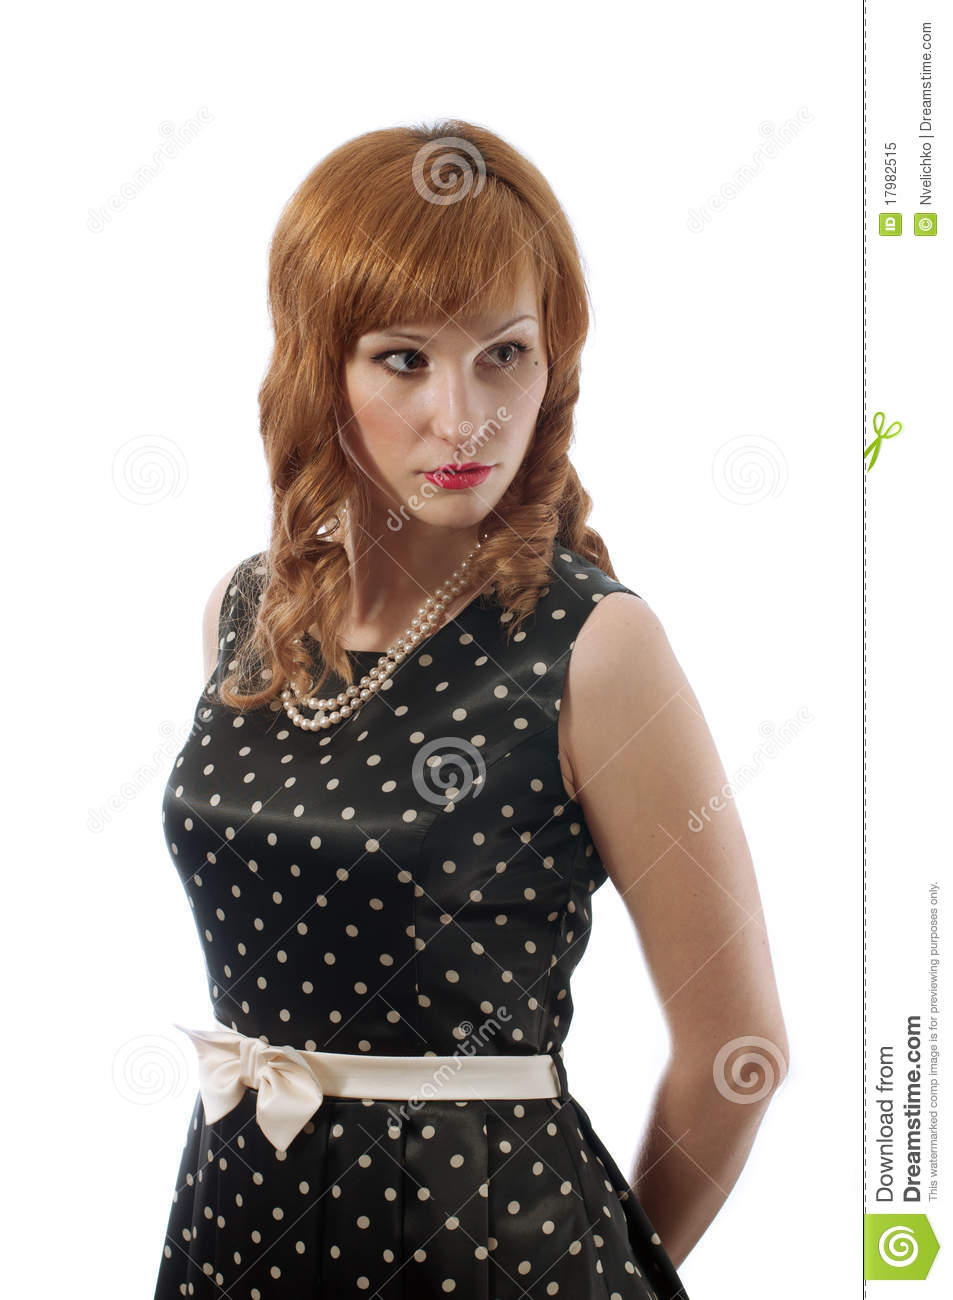 Retro Girl With The Hands Behind Her Back Royalty Free